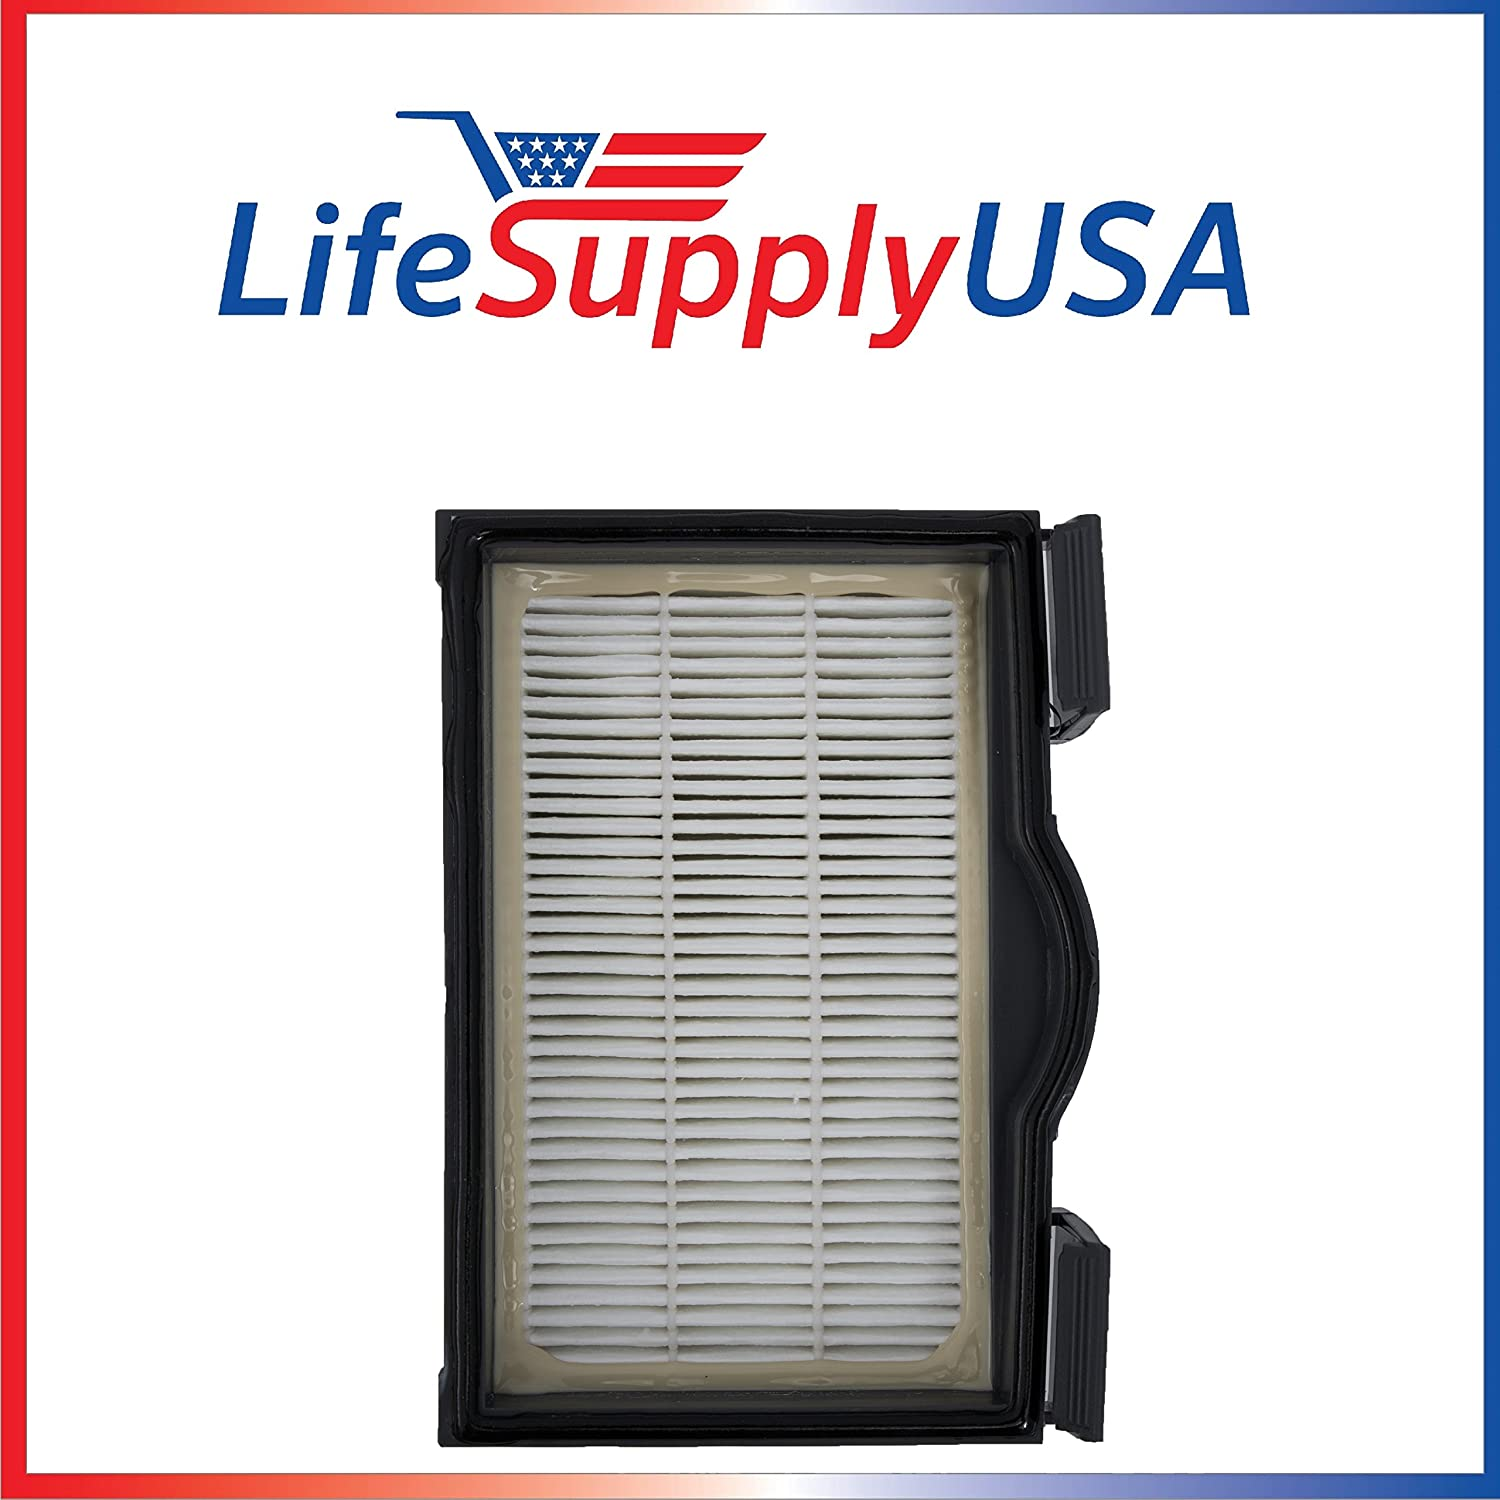 LifeSupplyUSA HEPA Filter for Electrolux Eureka HF8 MM Mighty Mite Banister Models